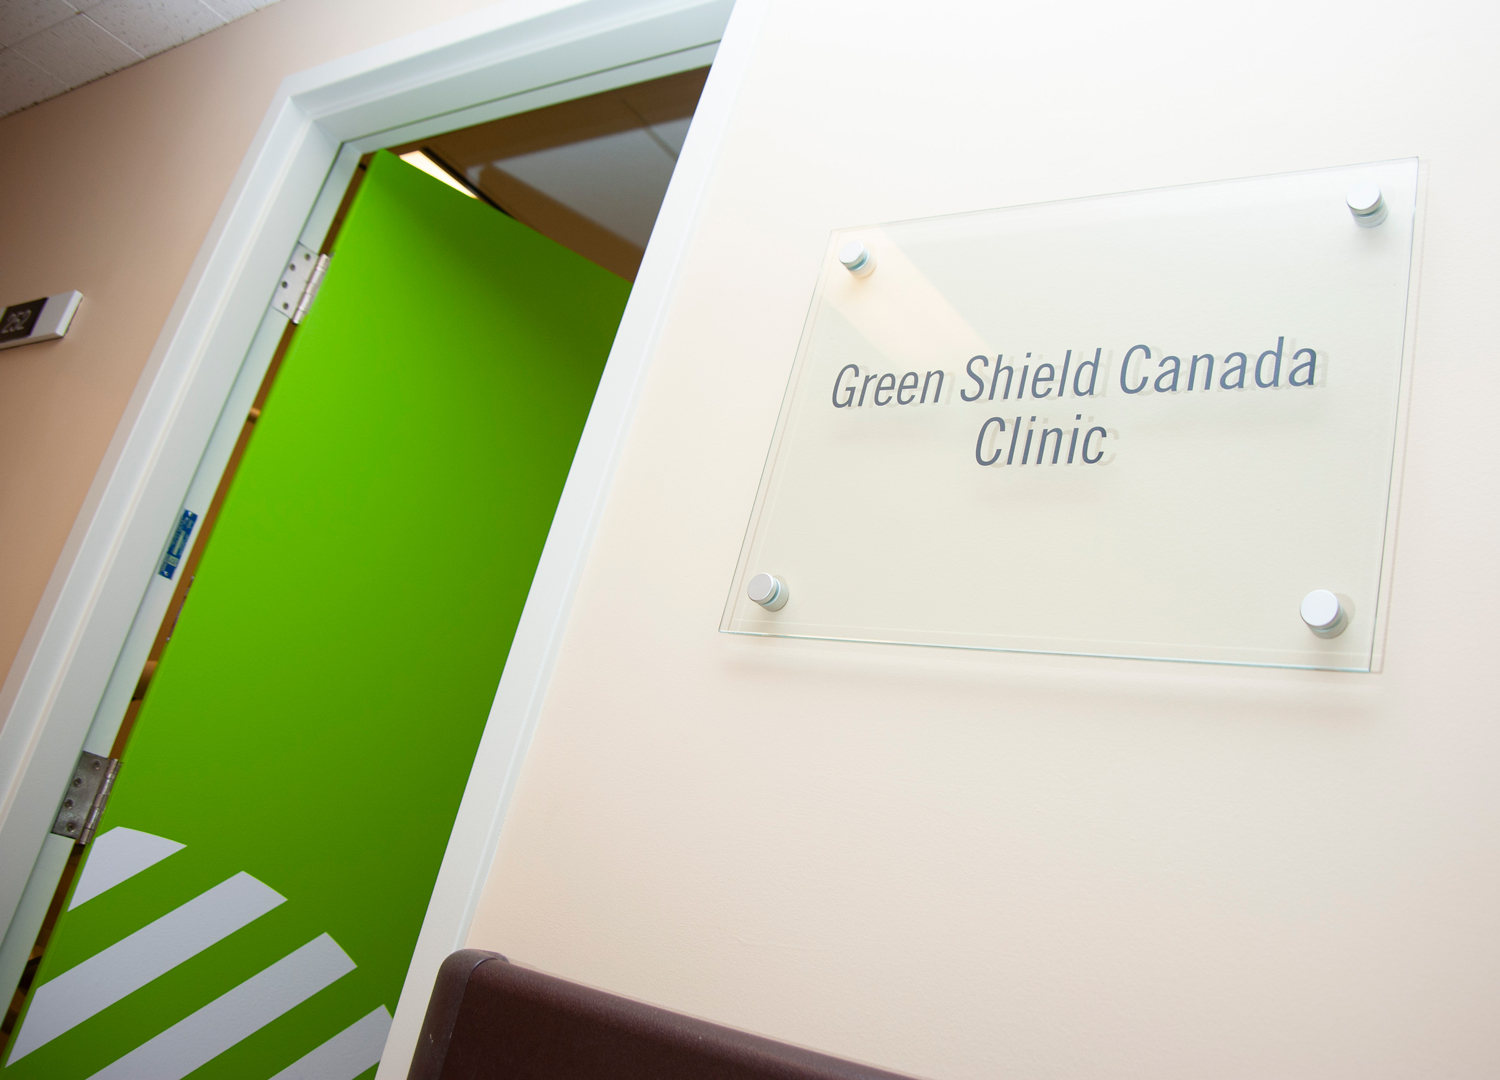 Green Shield Canada's historic $6.15-million gift to UofT's Faculty of Dentistry set to transform dental public health in Canada